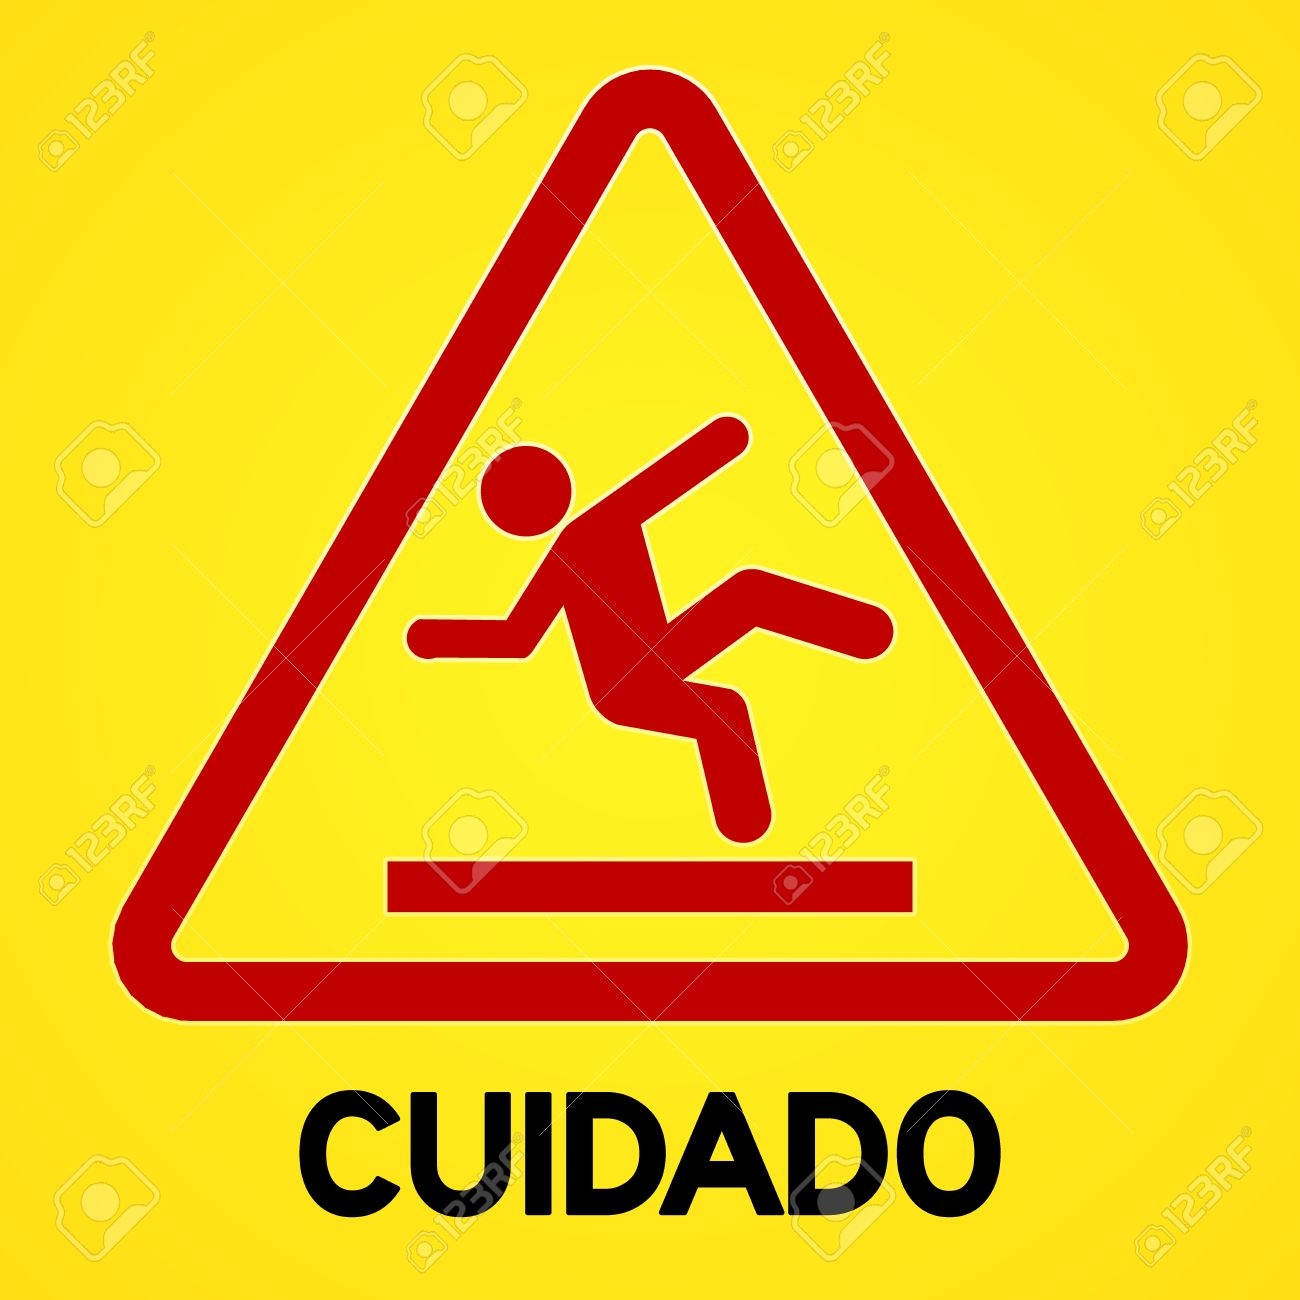 Square Symbol Of Bright Yellow And Red Cuidado Sign With Triangular